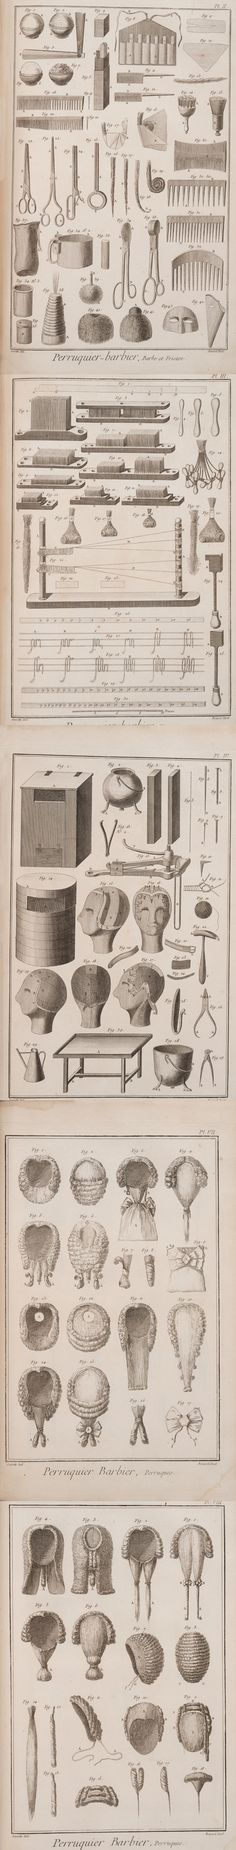 Men and women of the 18thC accepted that it was part of their public persona to wear a more modest hairpiece when at work or in society.  Here represented are the many tools, molds and techniques employed in the complex process of producing fashionable hairpieces.  Note the instruments for measuring heads and wigs; wig patterns and tools used by wigmakers; and common examples of wigs and the queues affixed to them | MIT Exhibit. Image composition: @LucindaBrant